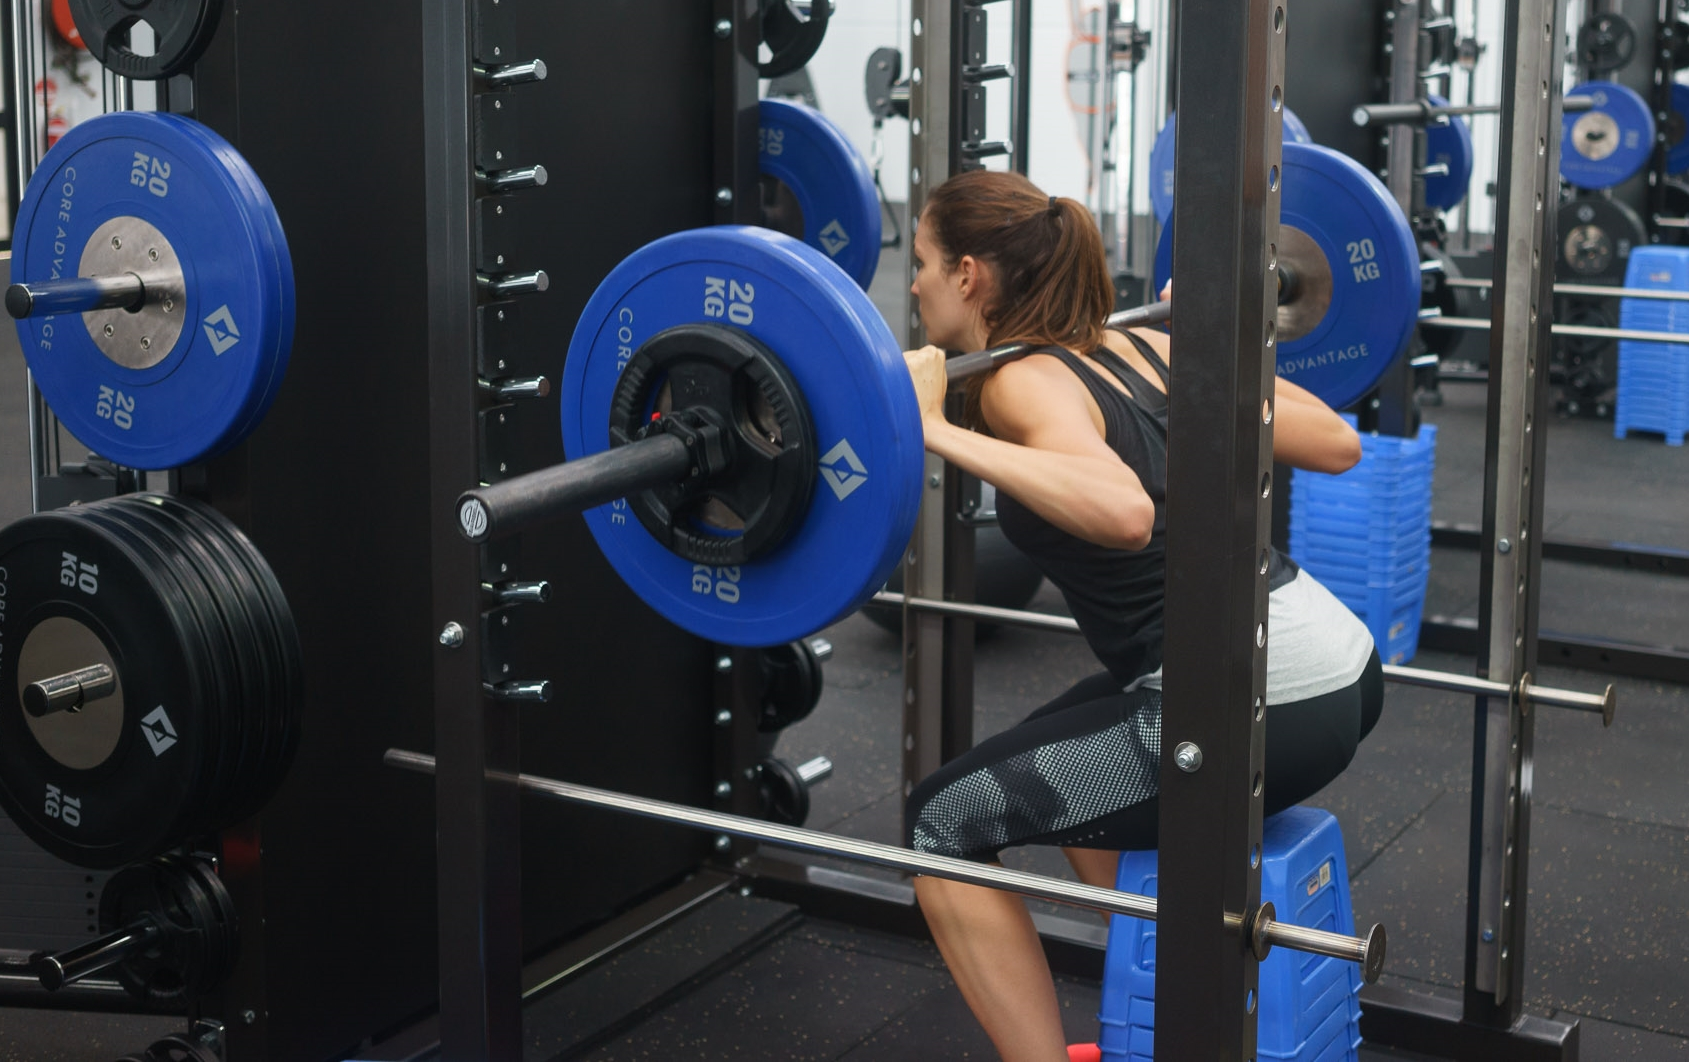 Loading the Glutes: The power of the squat